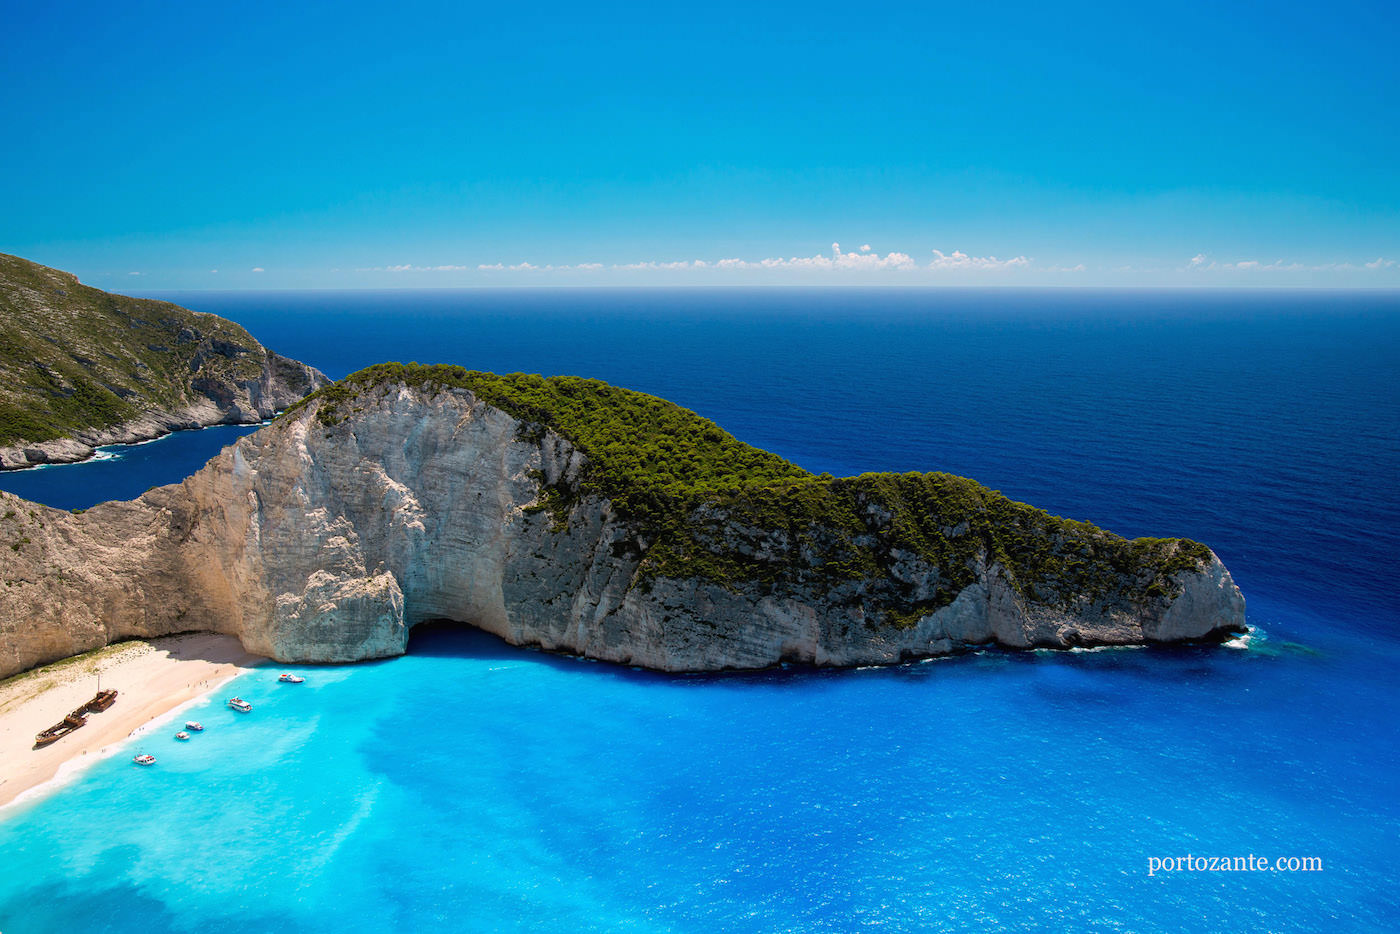 Porto Zante Greece Best Beach Resorts Shipwreck Zakynthos